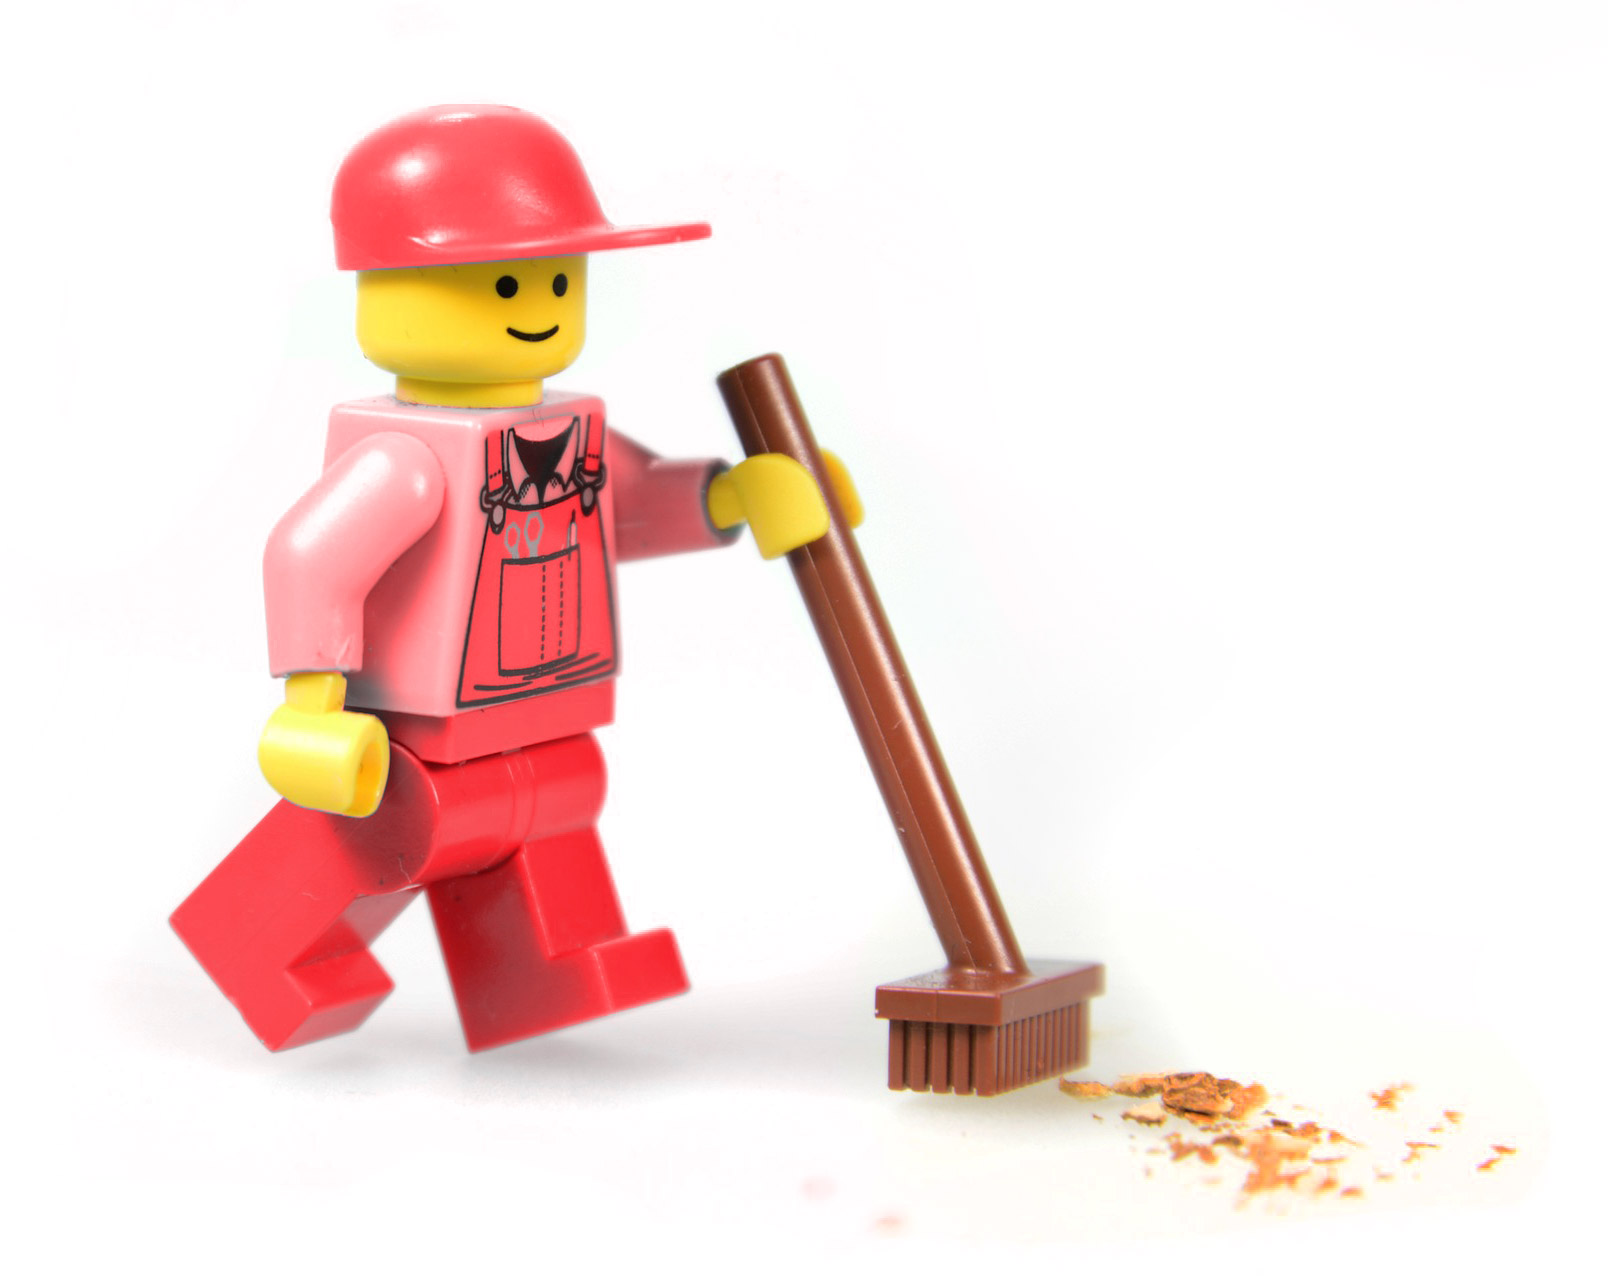 Lego man cleaning with a lego broom